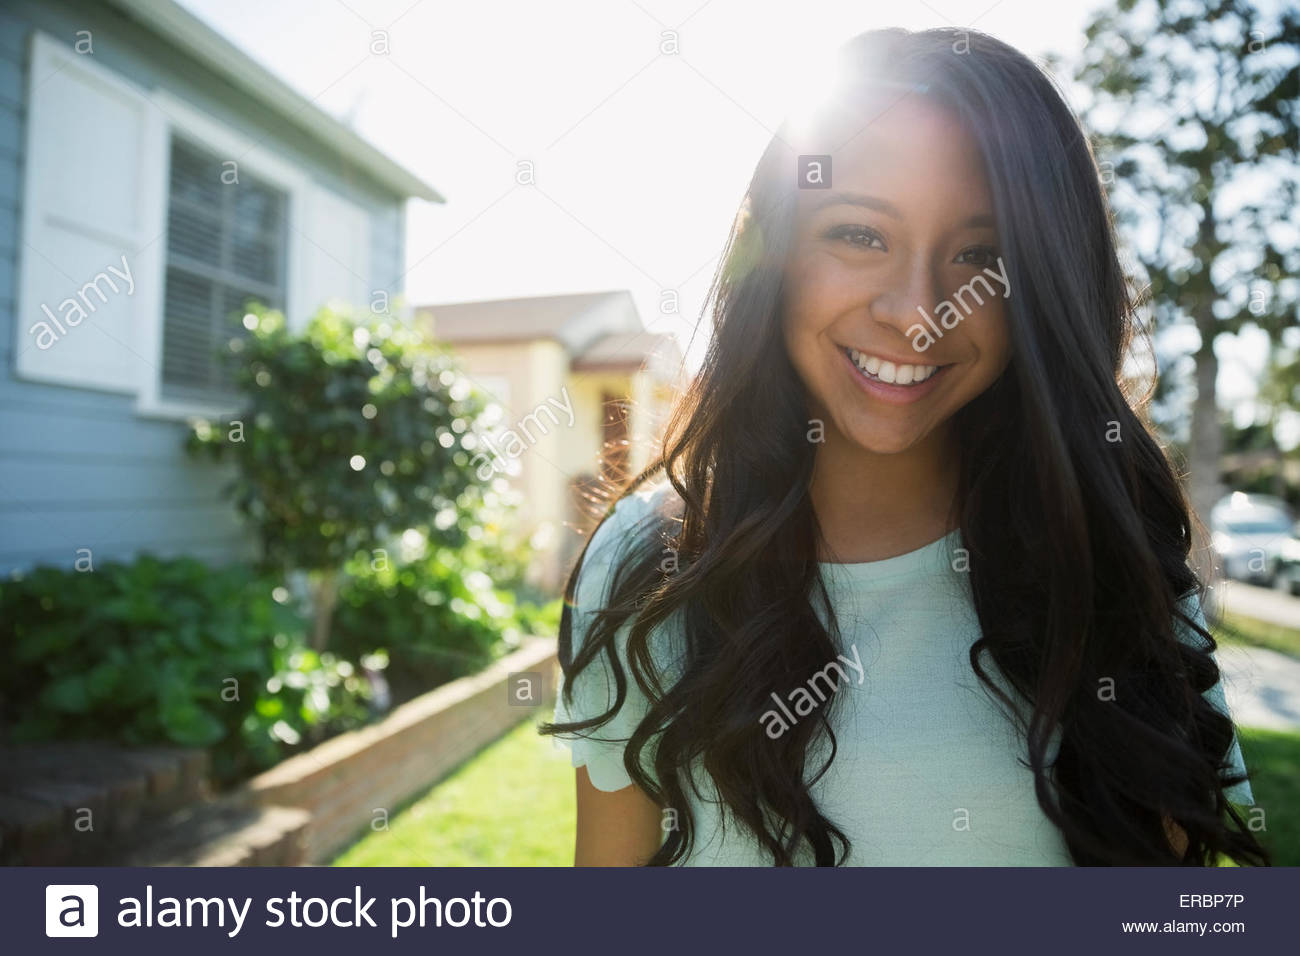 Portrait of teenage girl smiling brunette cour avant ensoleillée Photo Stock